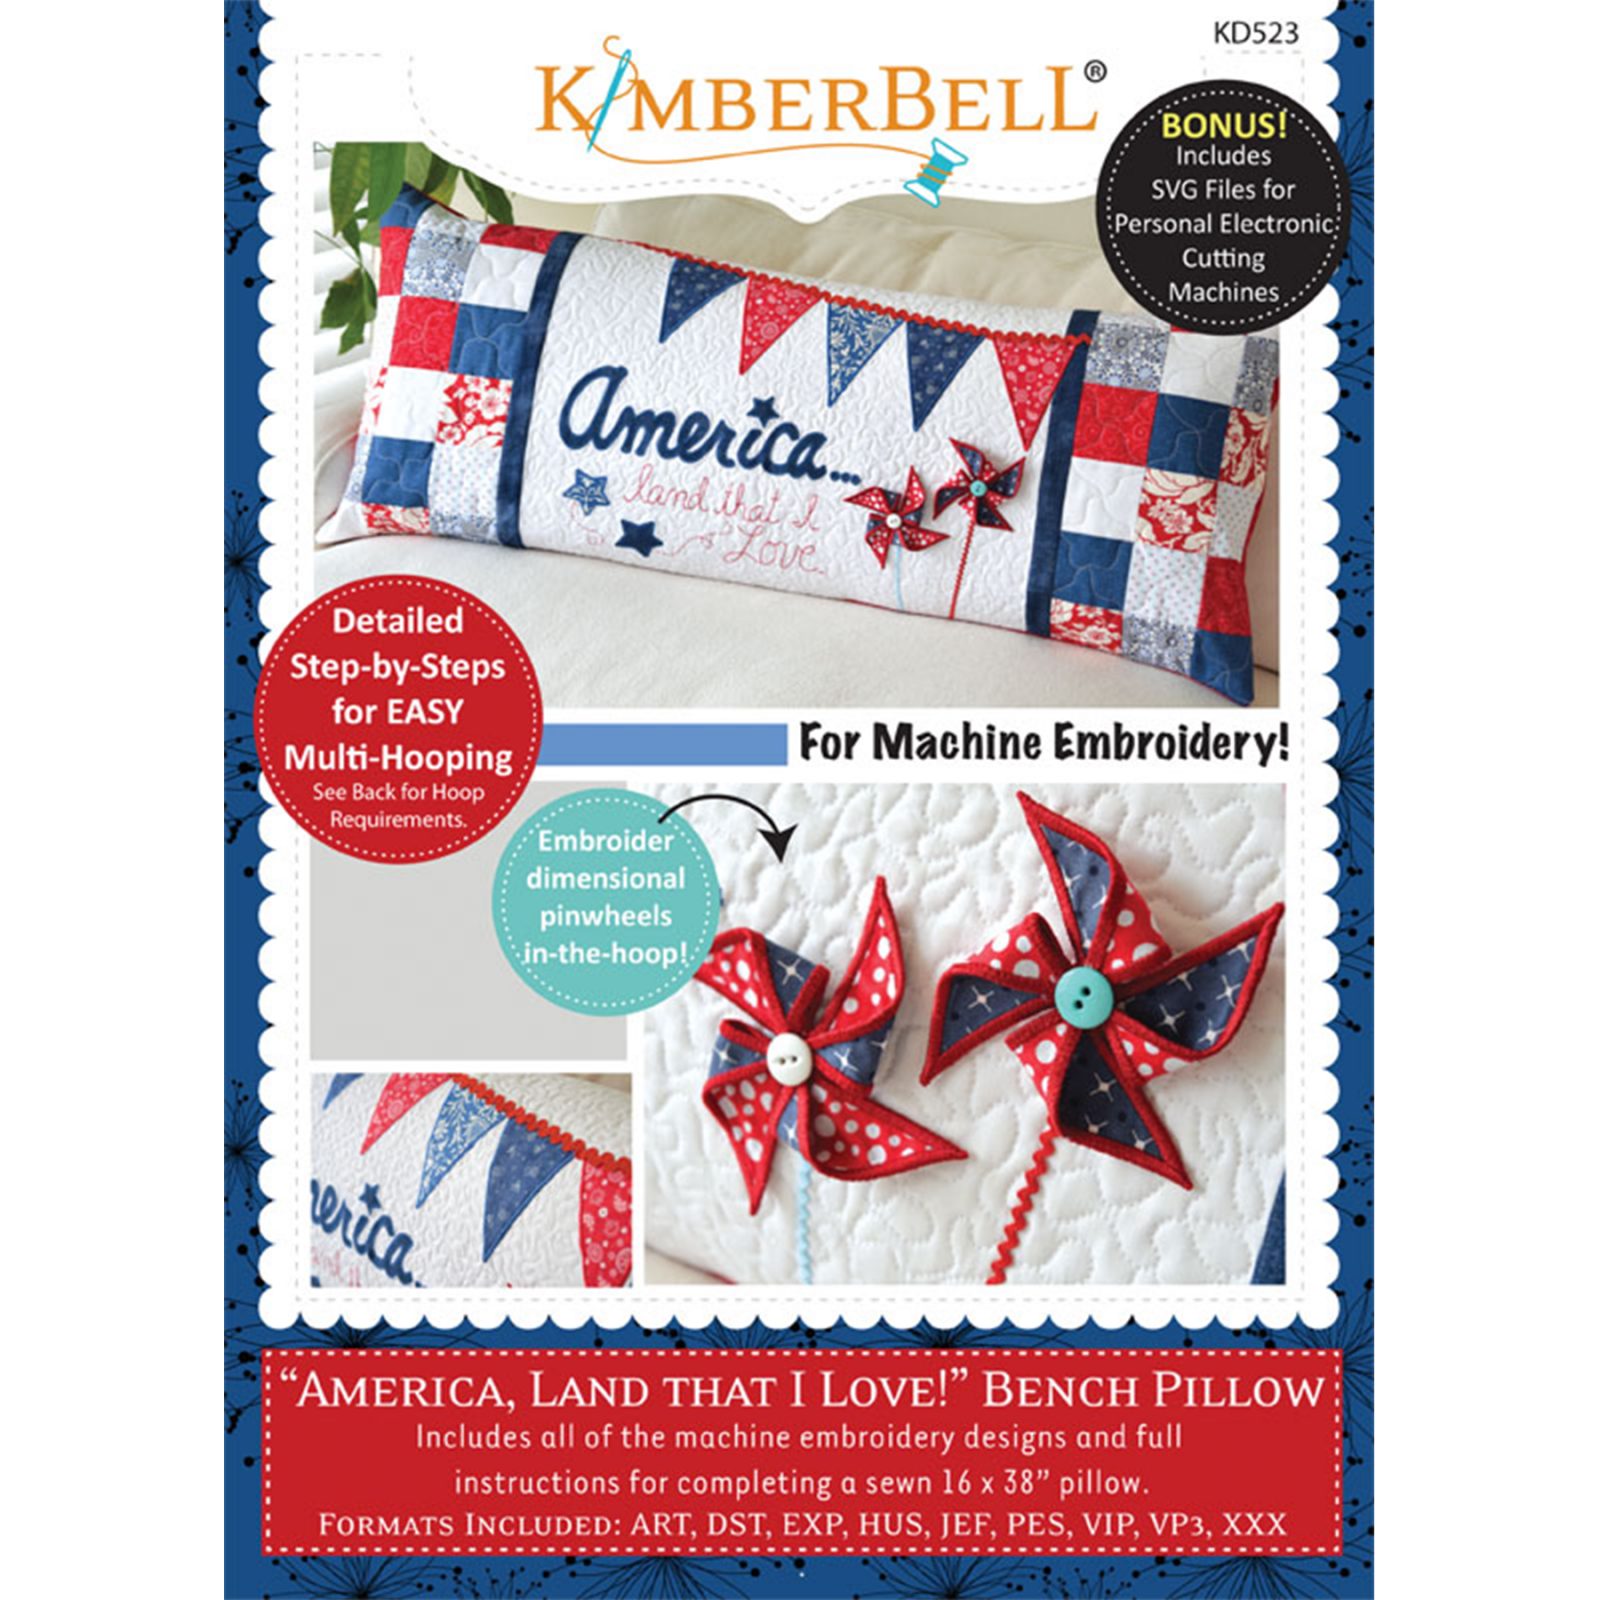 Kimberbell Machine Embroider by Number:Kite